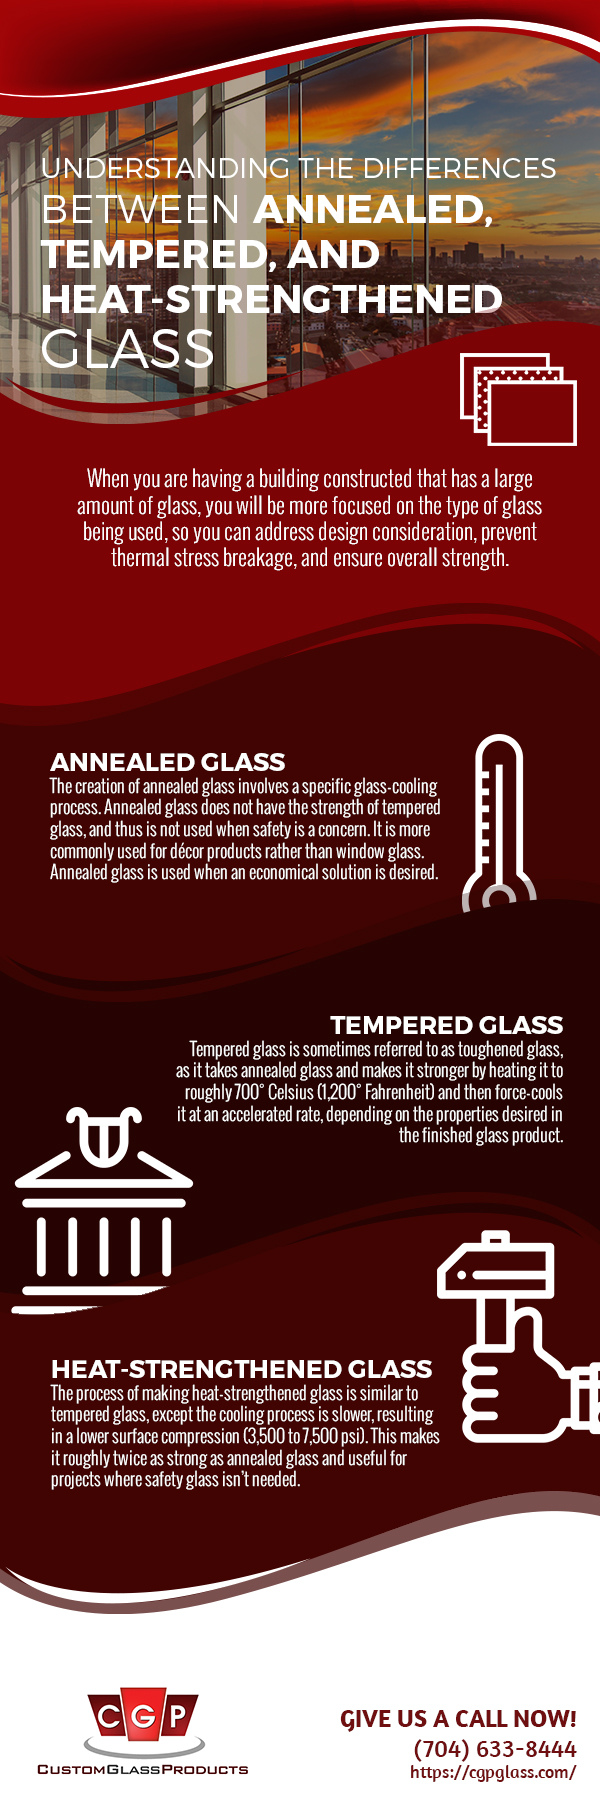 Understanding the Differences Between Annealed, Tempered